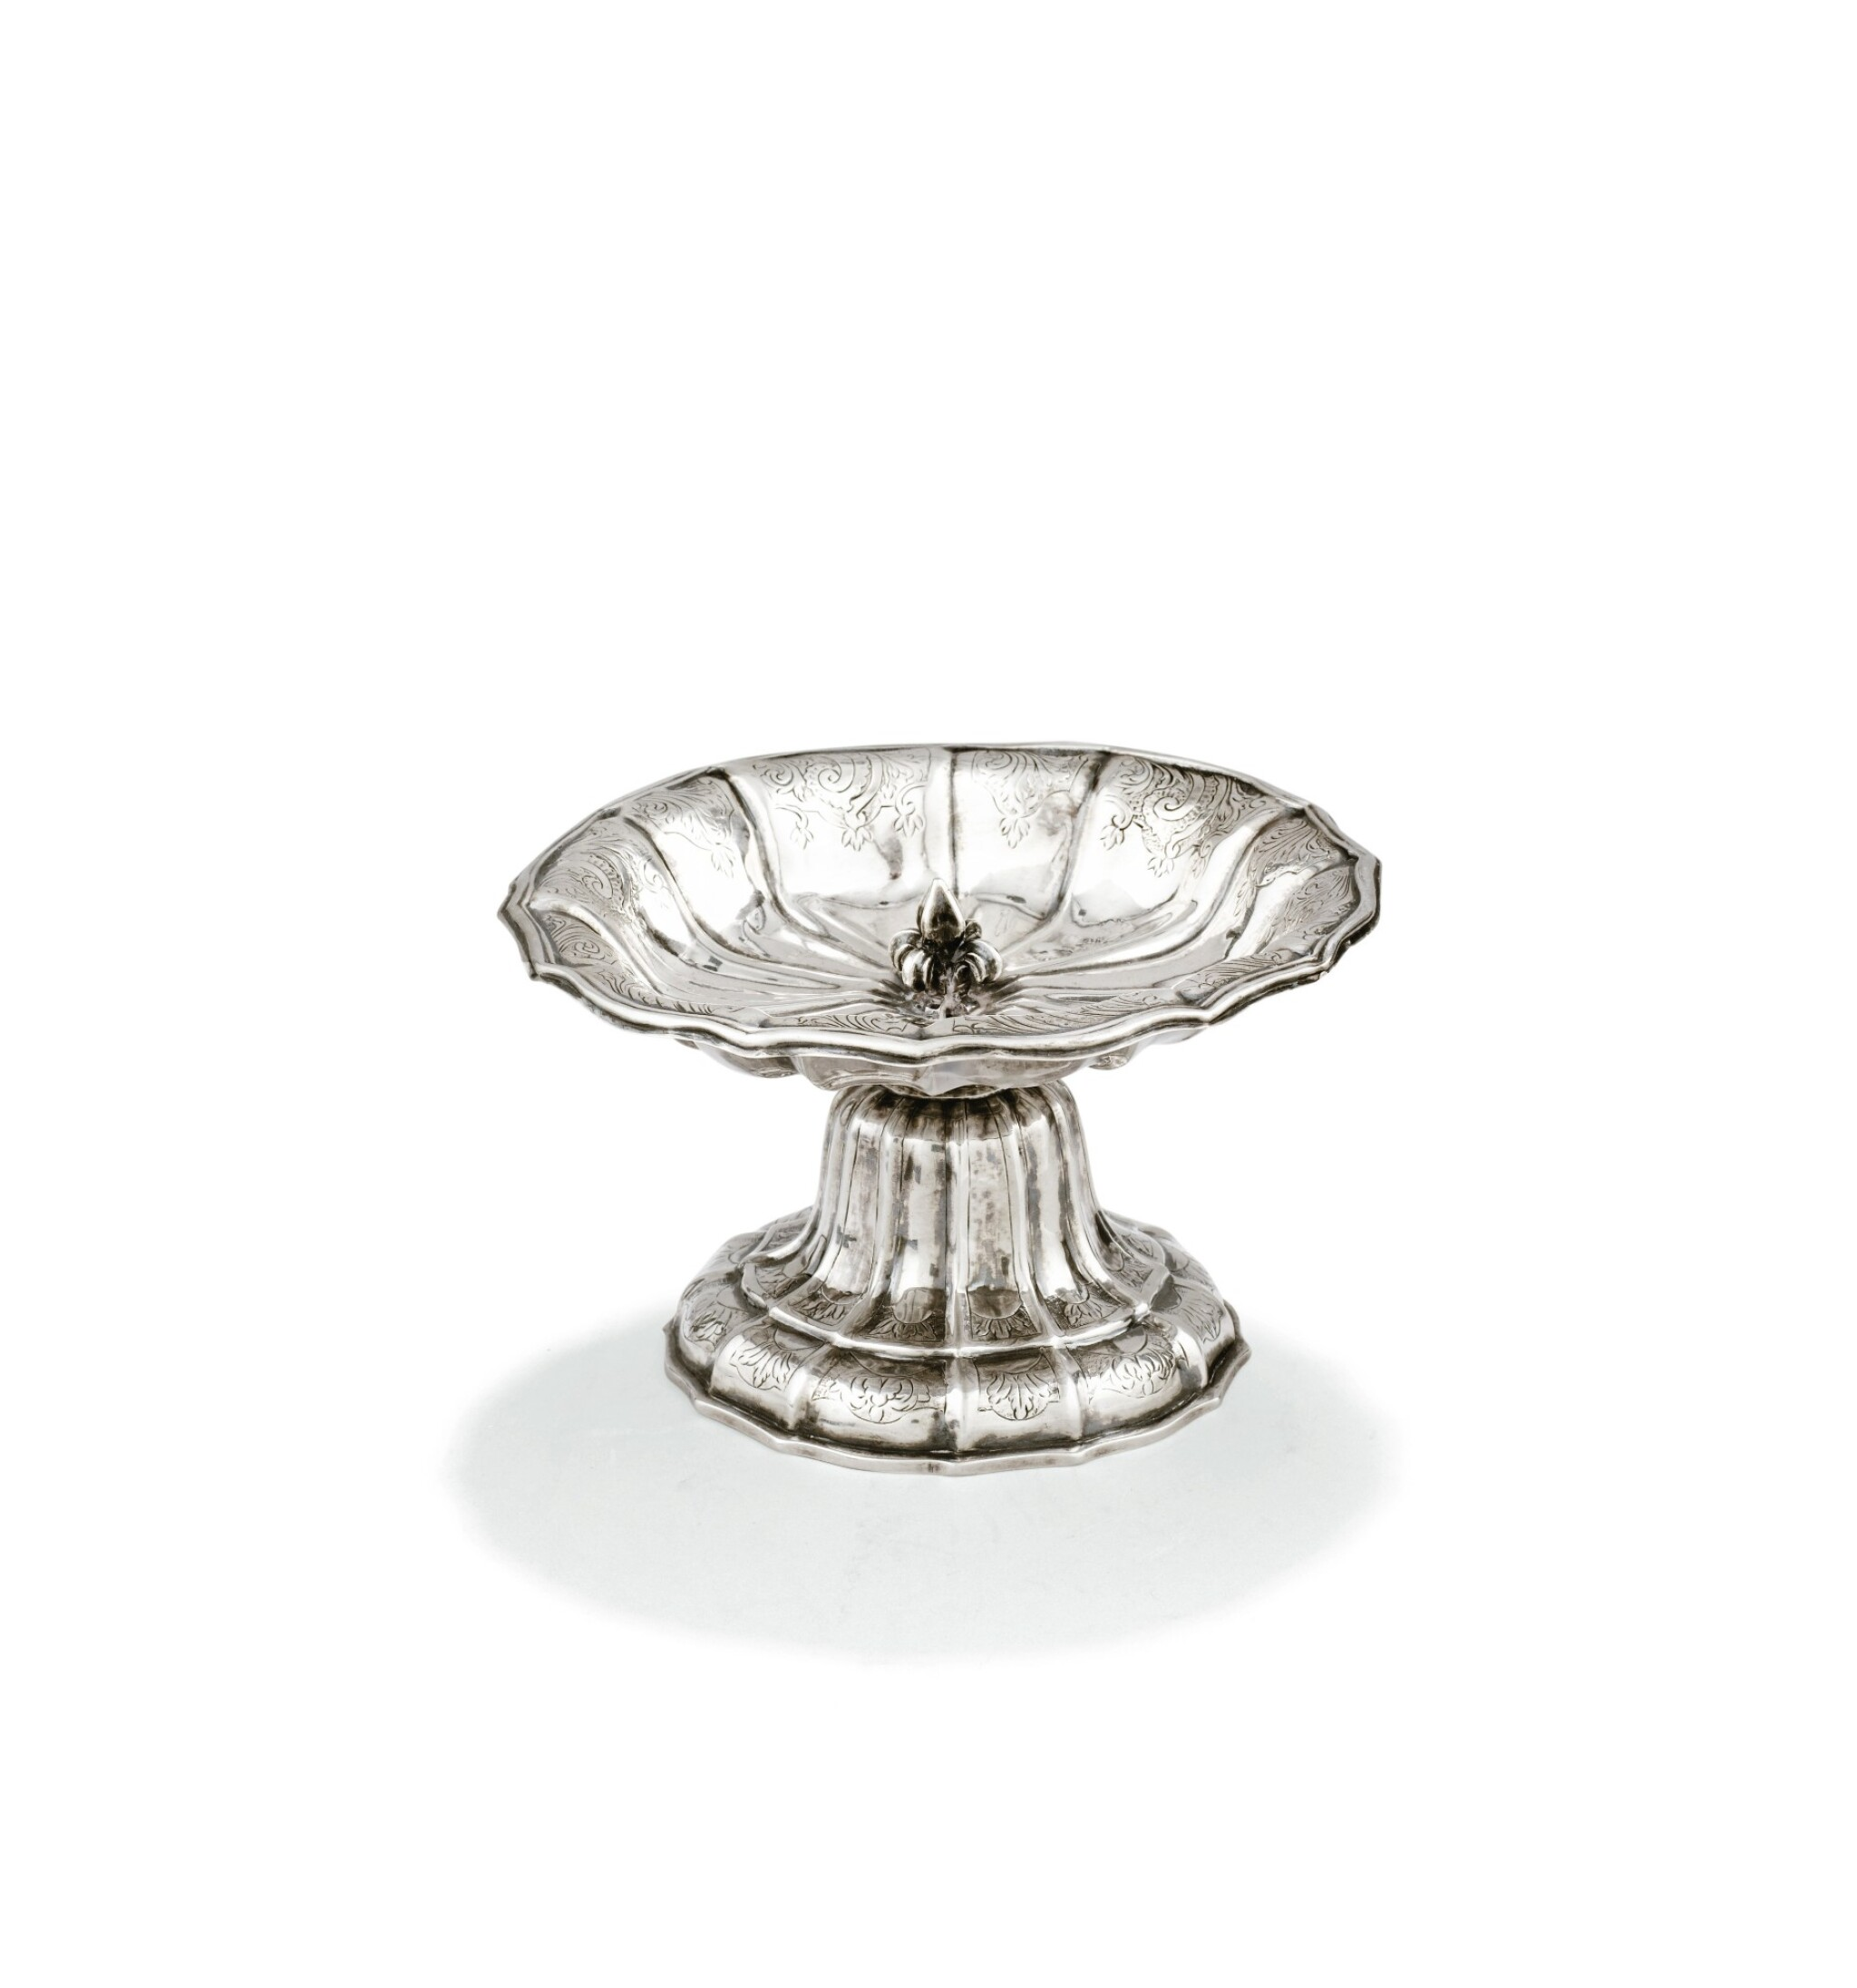 View 1 of Lot 163. A SMALL BELGIAN SILVER CUP ON FOOT, JEAN-FRANÇOIS-TOUSSAINT WINAND, LIÈGE, 1773 |  DRAGEOIR EN FORME DE TAZZA ROND PAR JEAN-FRANÇOIS-TOUSSAINT WINAND, LIÈGE, 1772.